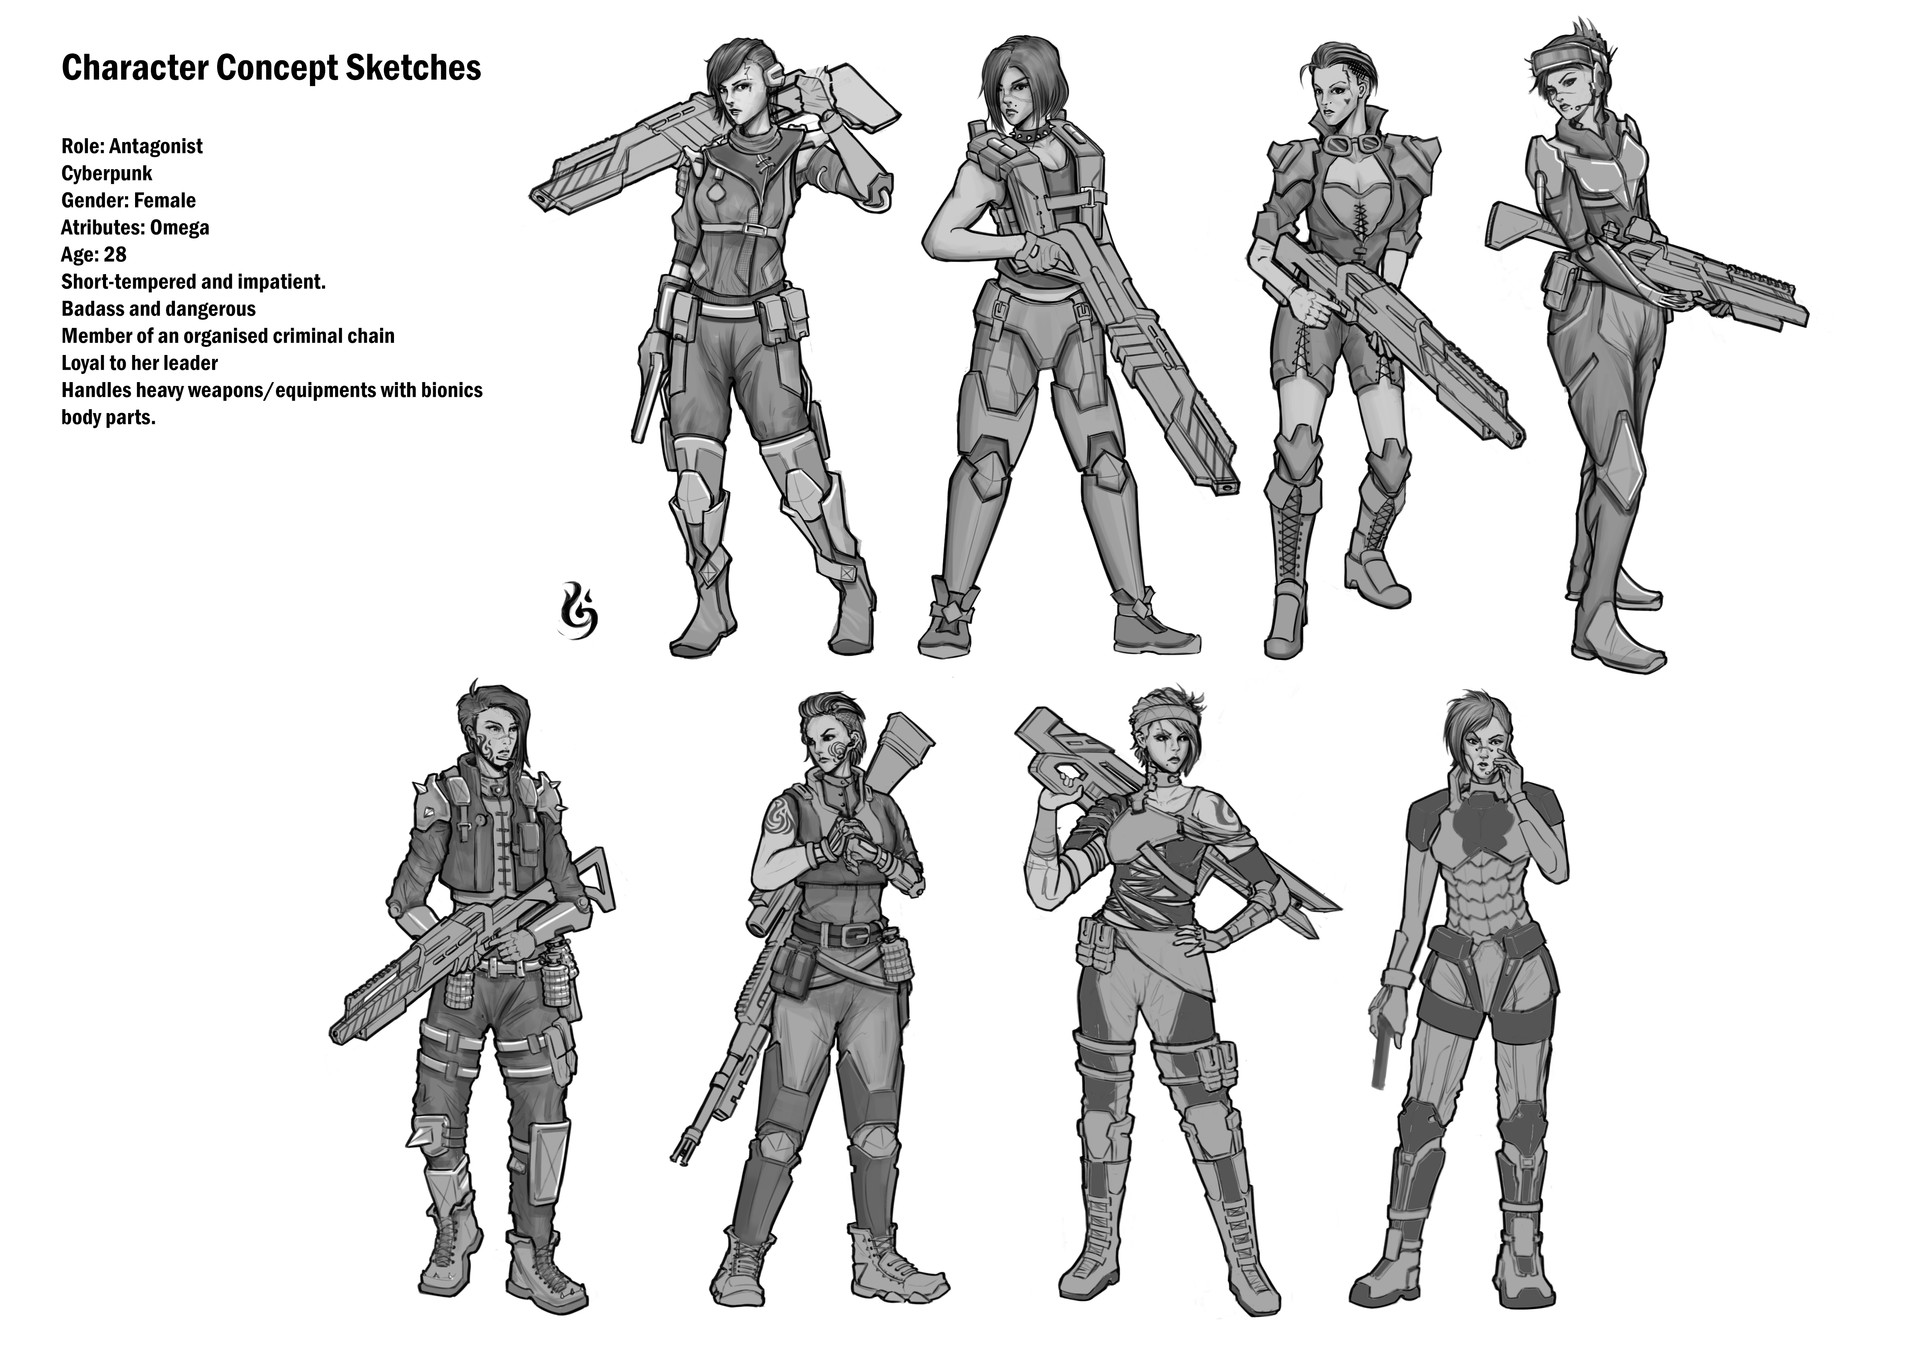 Badass Female Soldier Concept Art